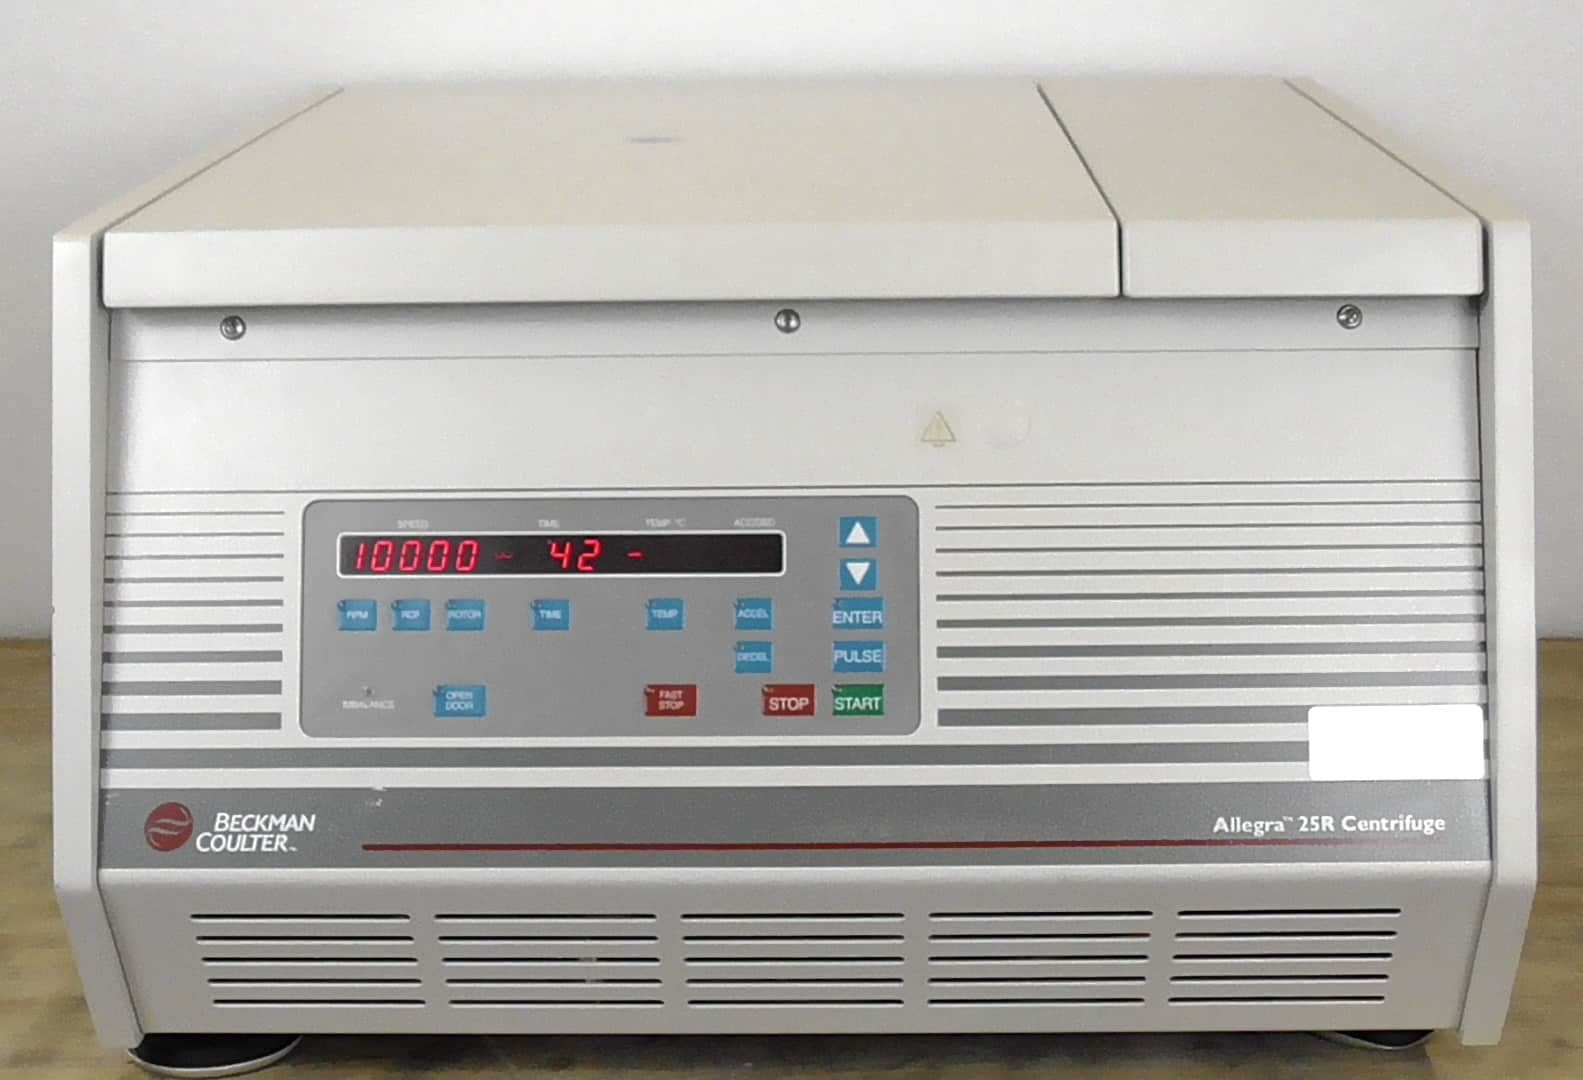 Beckman Coulter Allegra 25R Centrifuge with Rotor